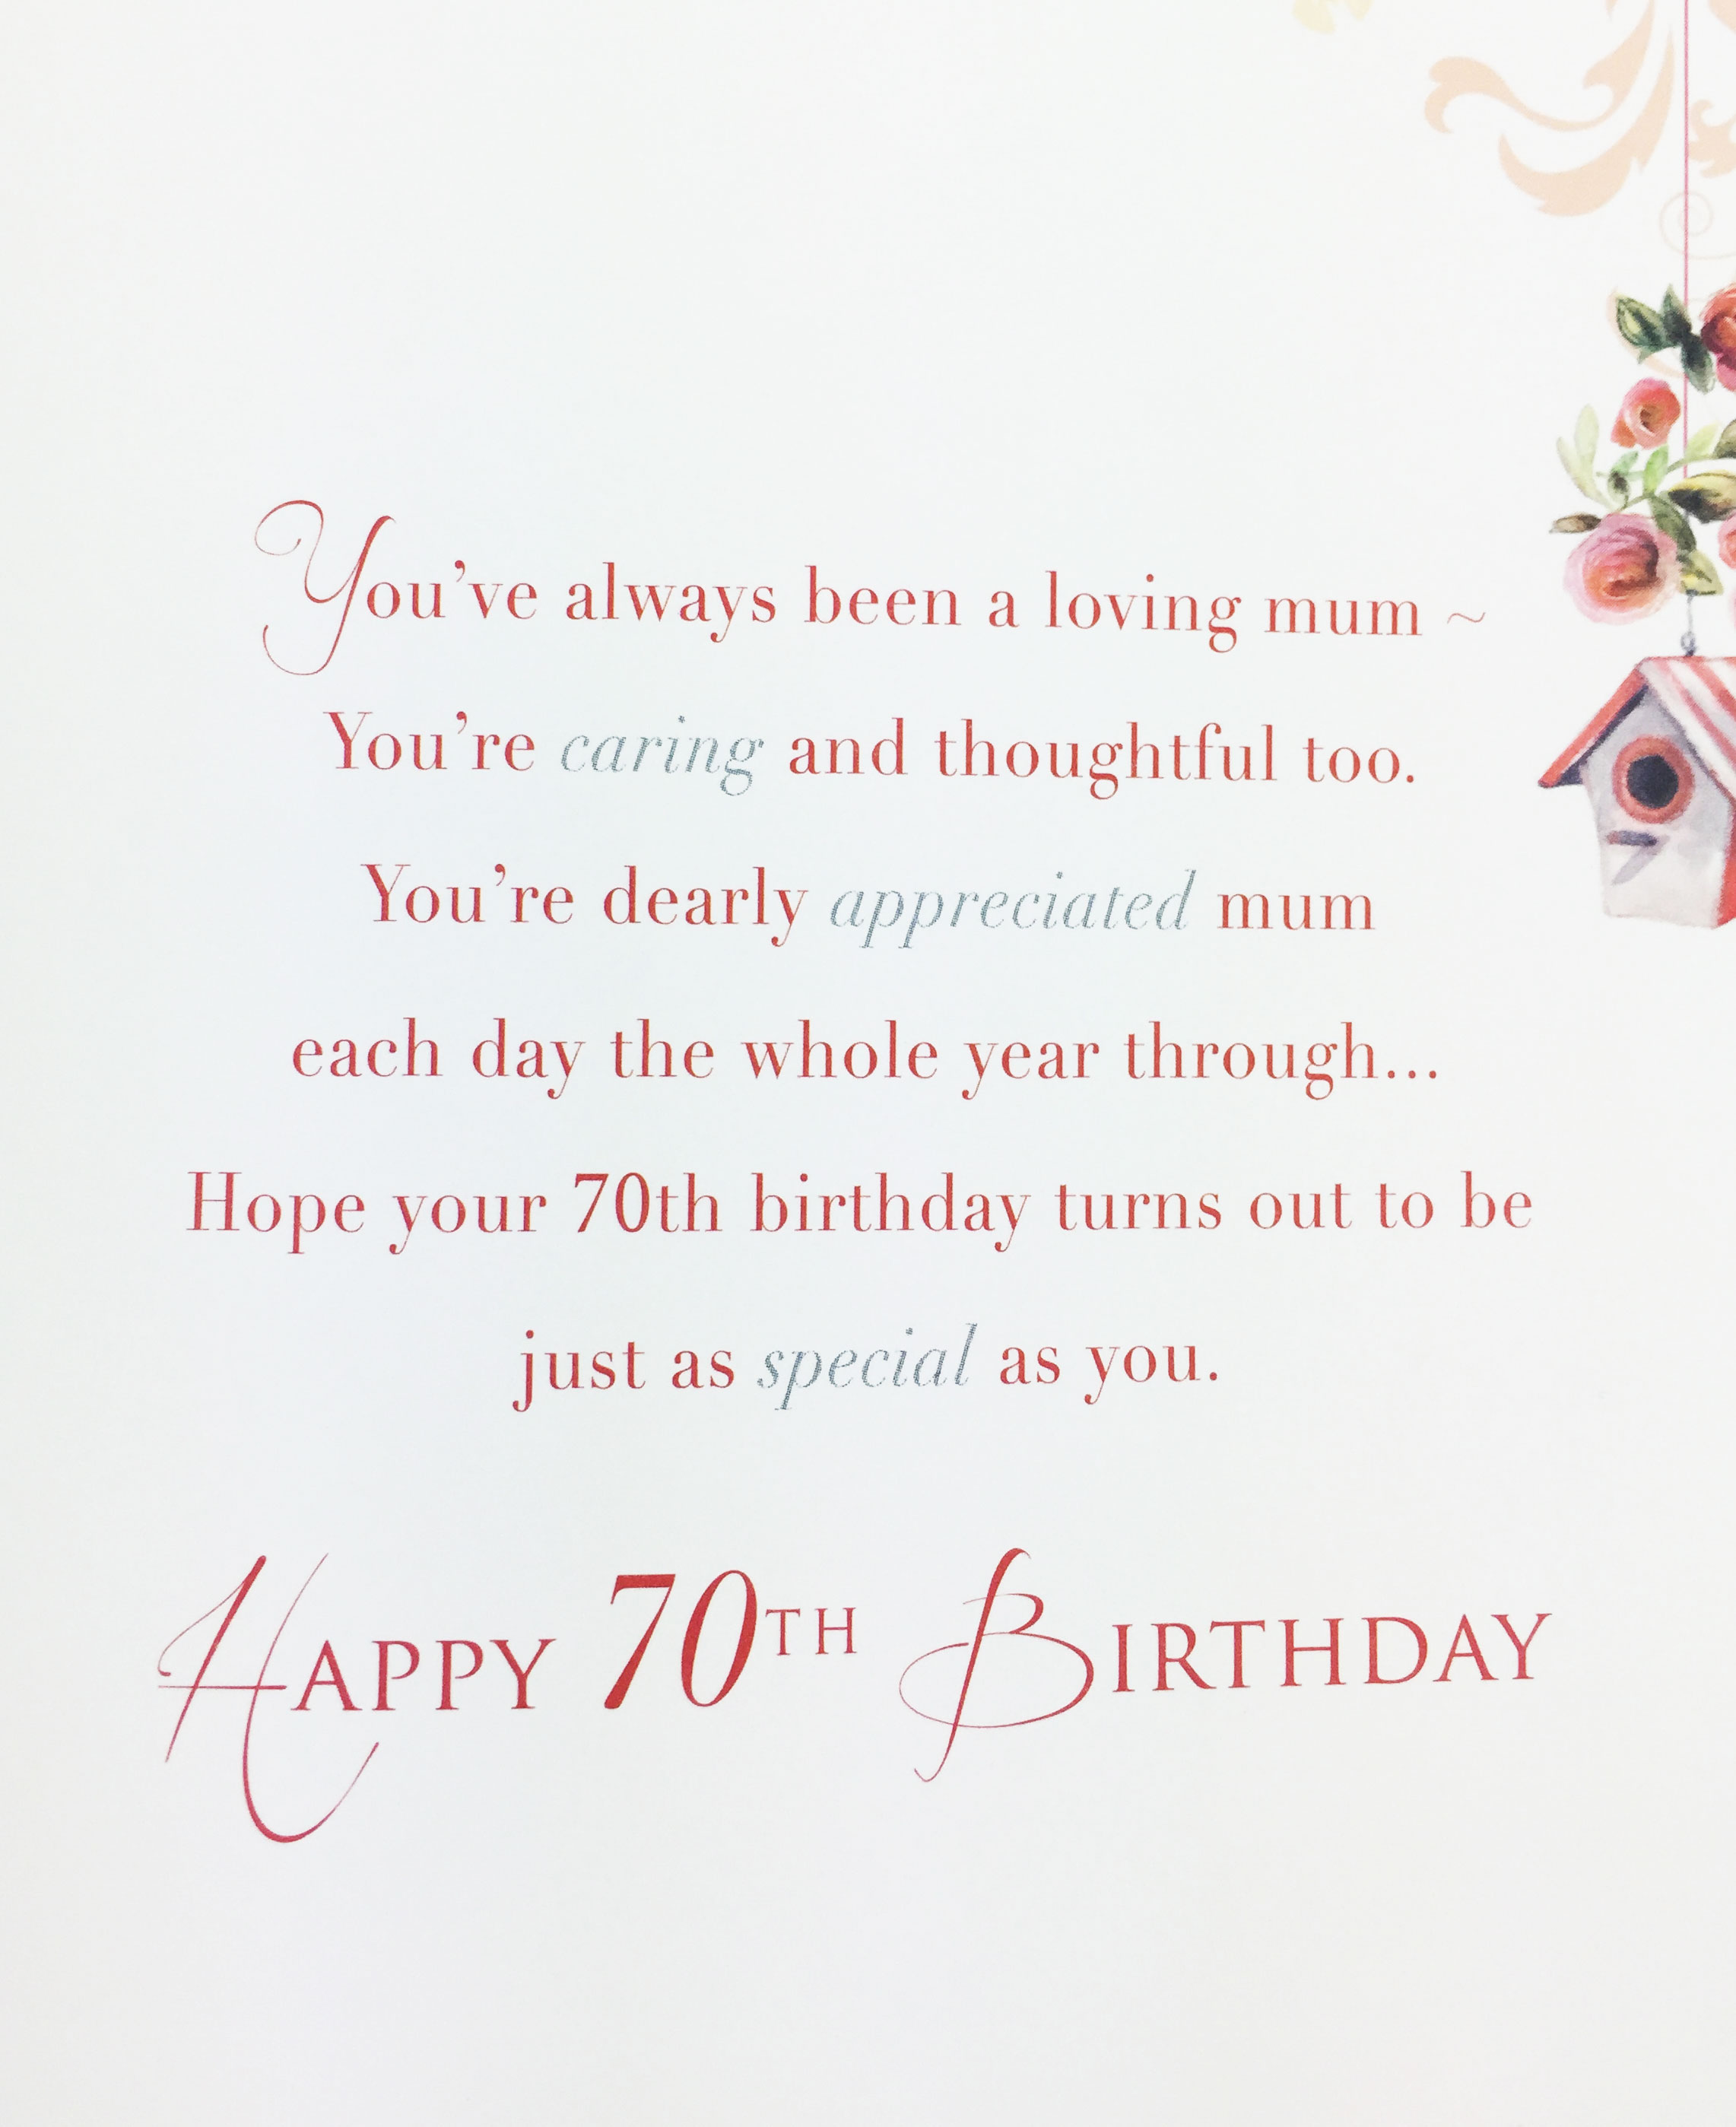 birthday wishes for 70th birthday card ; 70Th-Birthday-Messages-For-Cards-is-bewitching-ideas-which-can-be-applied-into-your-birthday-Card-2